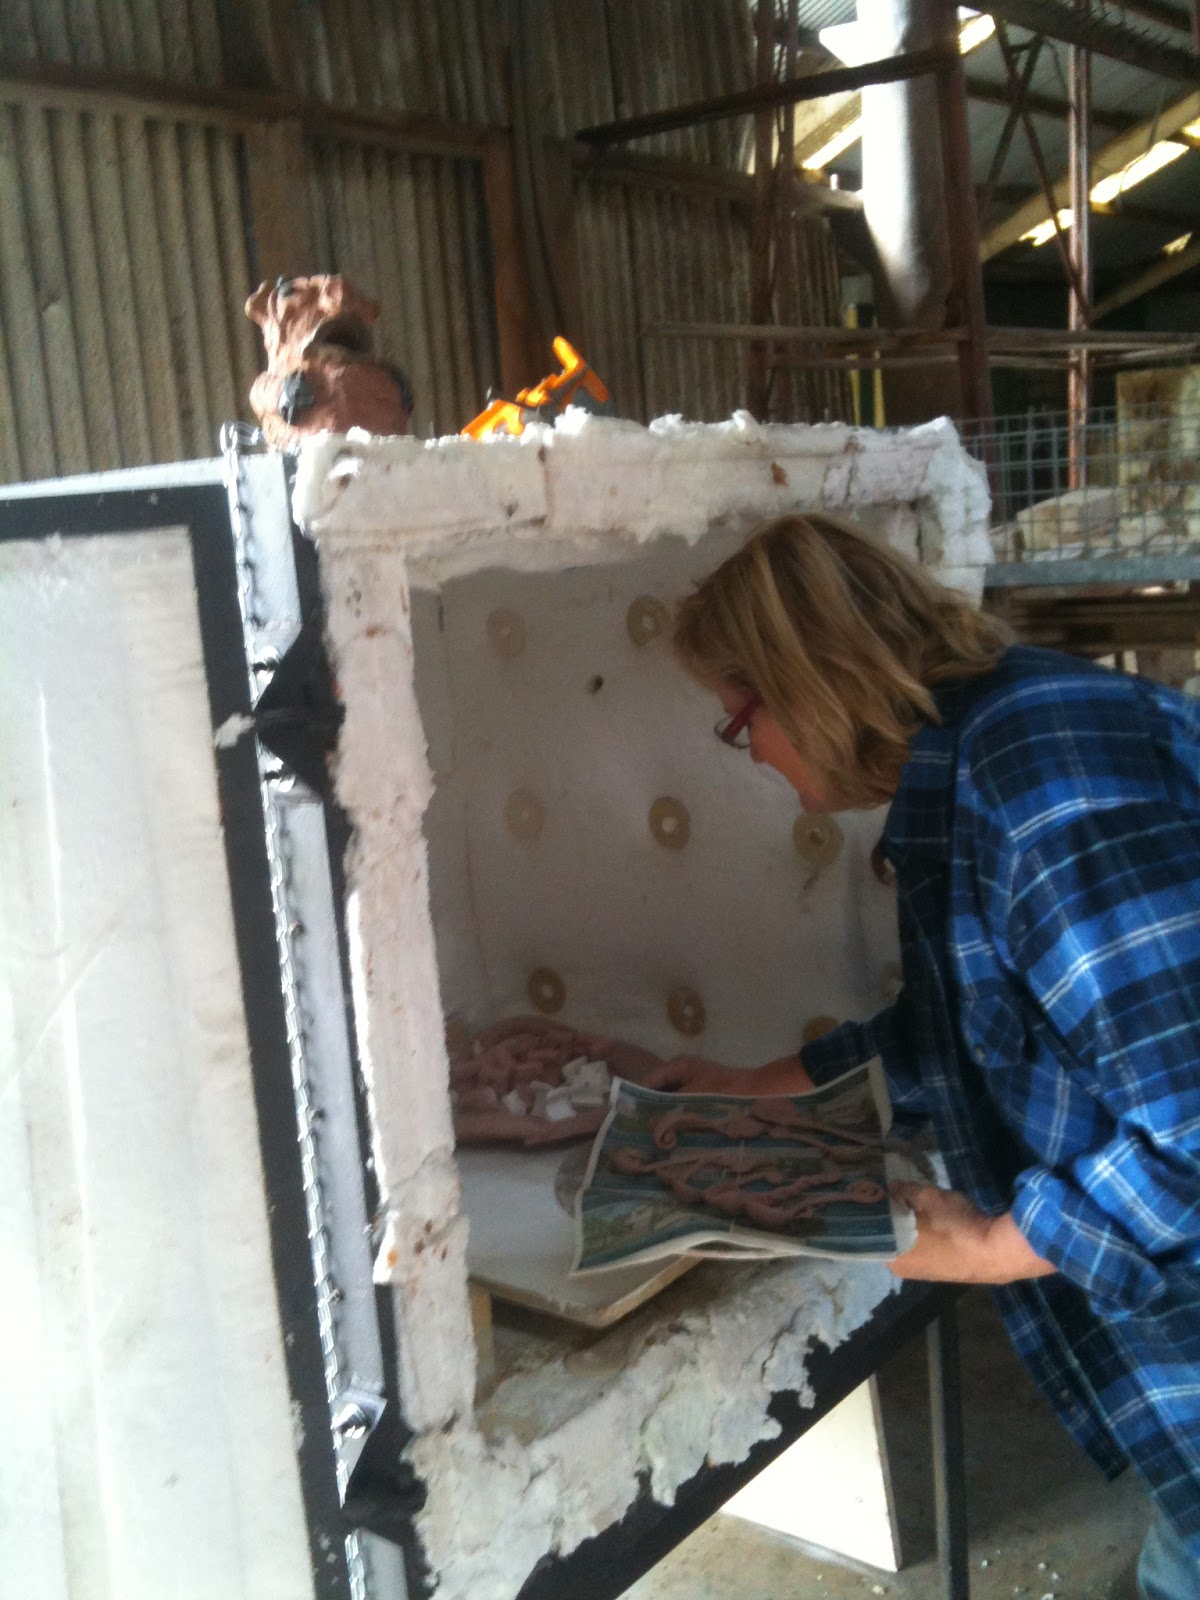 gas kiln. my first job was to pack the kiln and although i\u0027ve packed electric kilns, i had never \u201cmy own\u201d gas kiln-very exciting! a